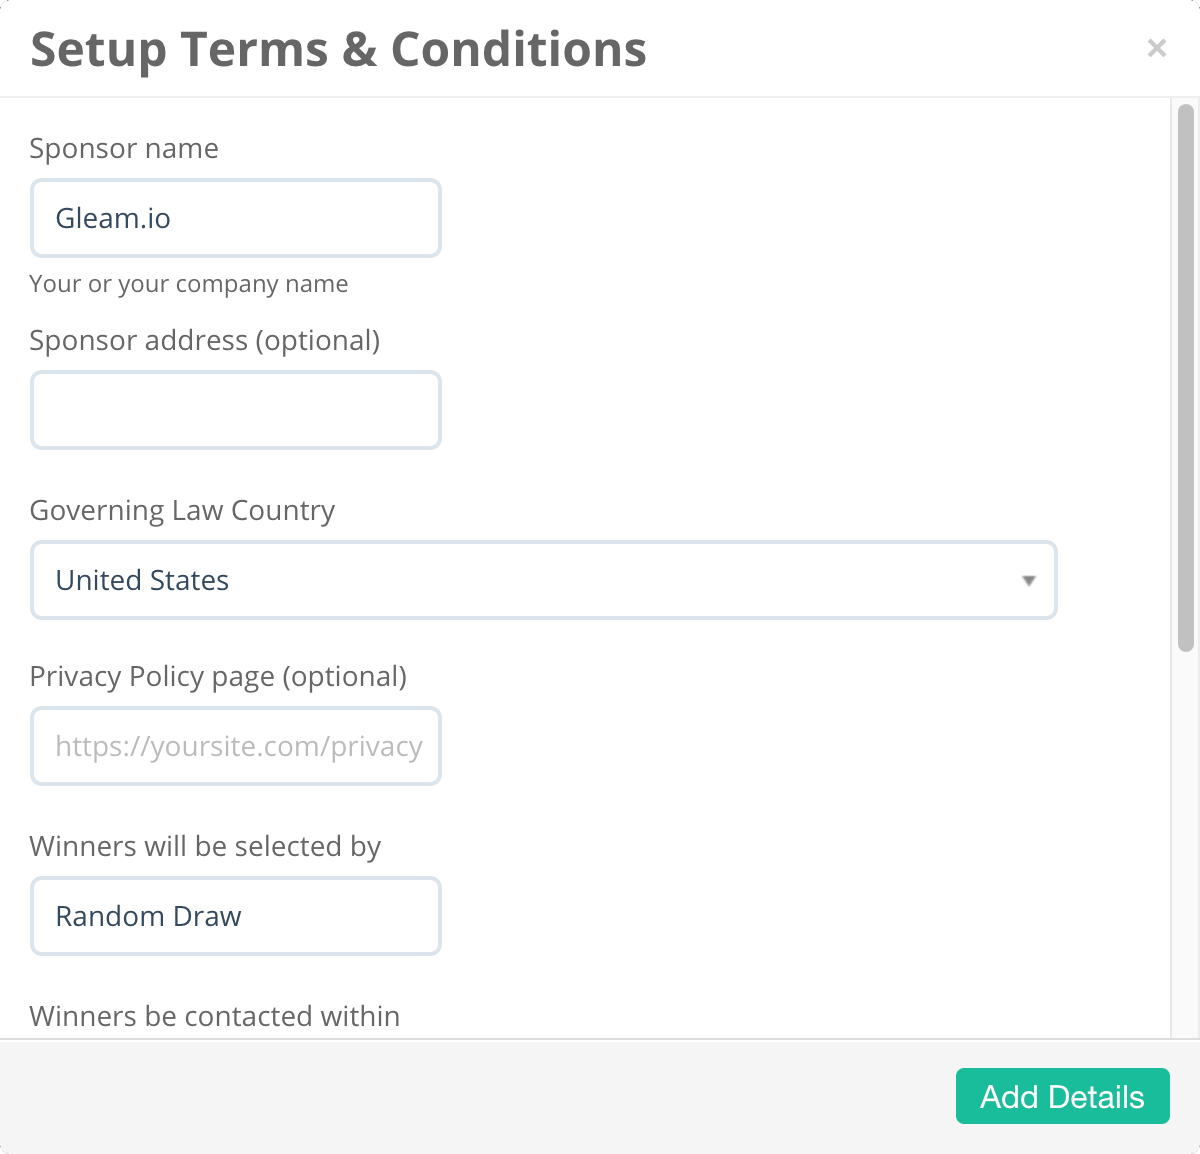 Optional fields to enhance your automatically generated terms & conditions on Gleam campaigns